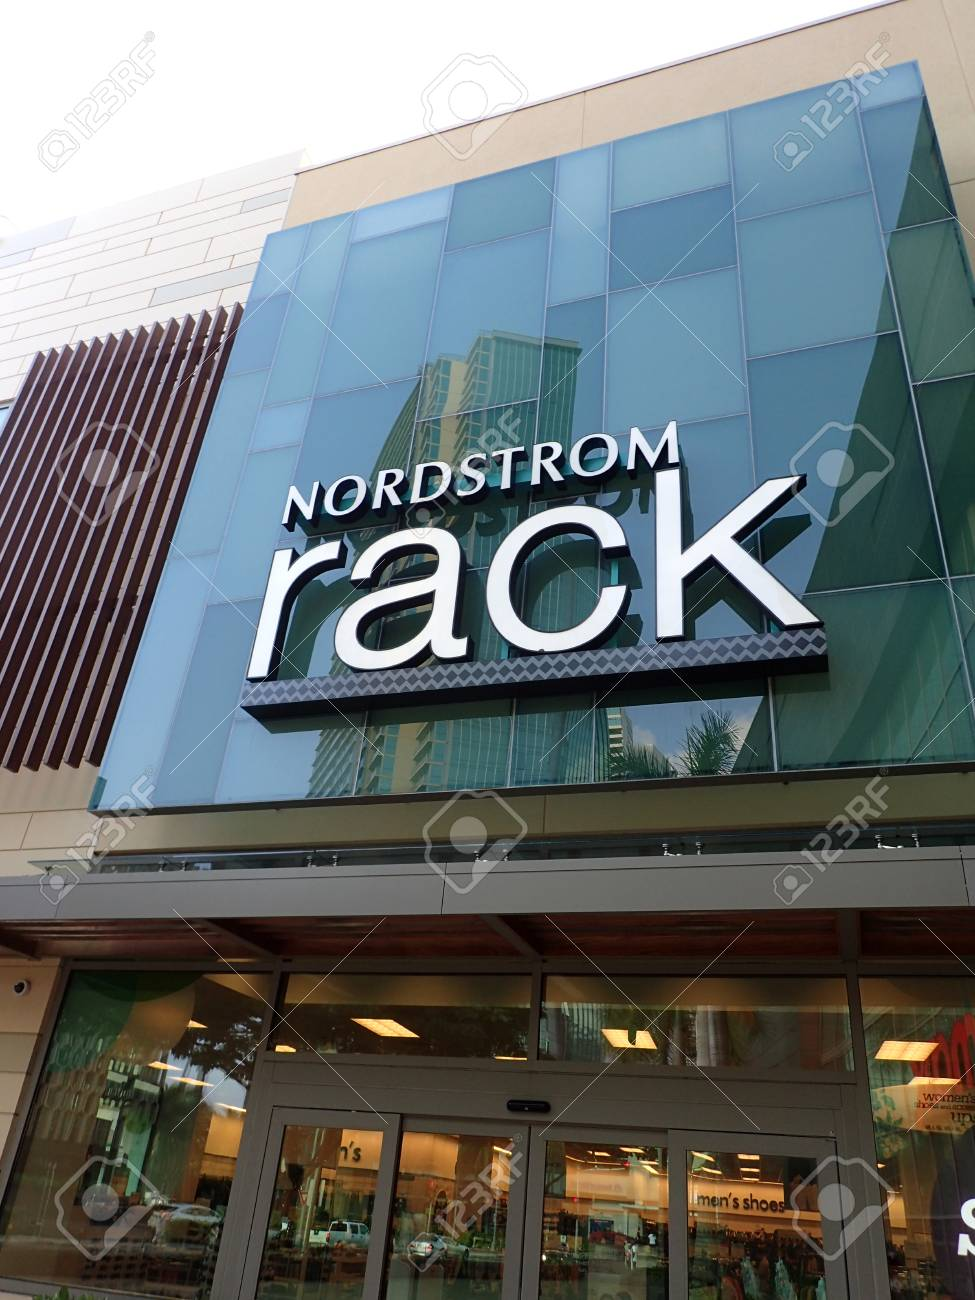 2532d1f080 HONOLULU - JANUARY 28  Nordstrom Rack sign and entance way in Ward Village  on Oahu